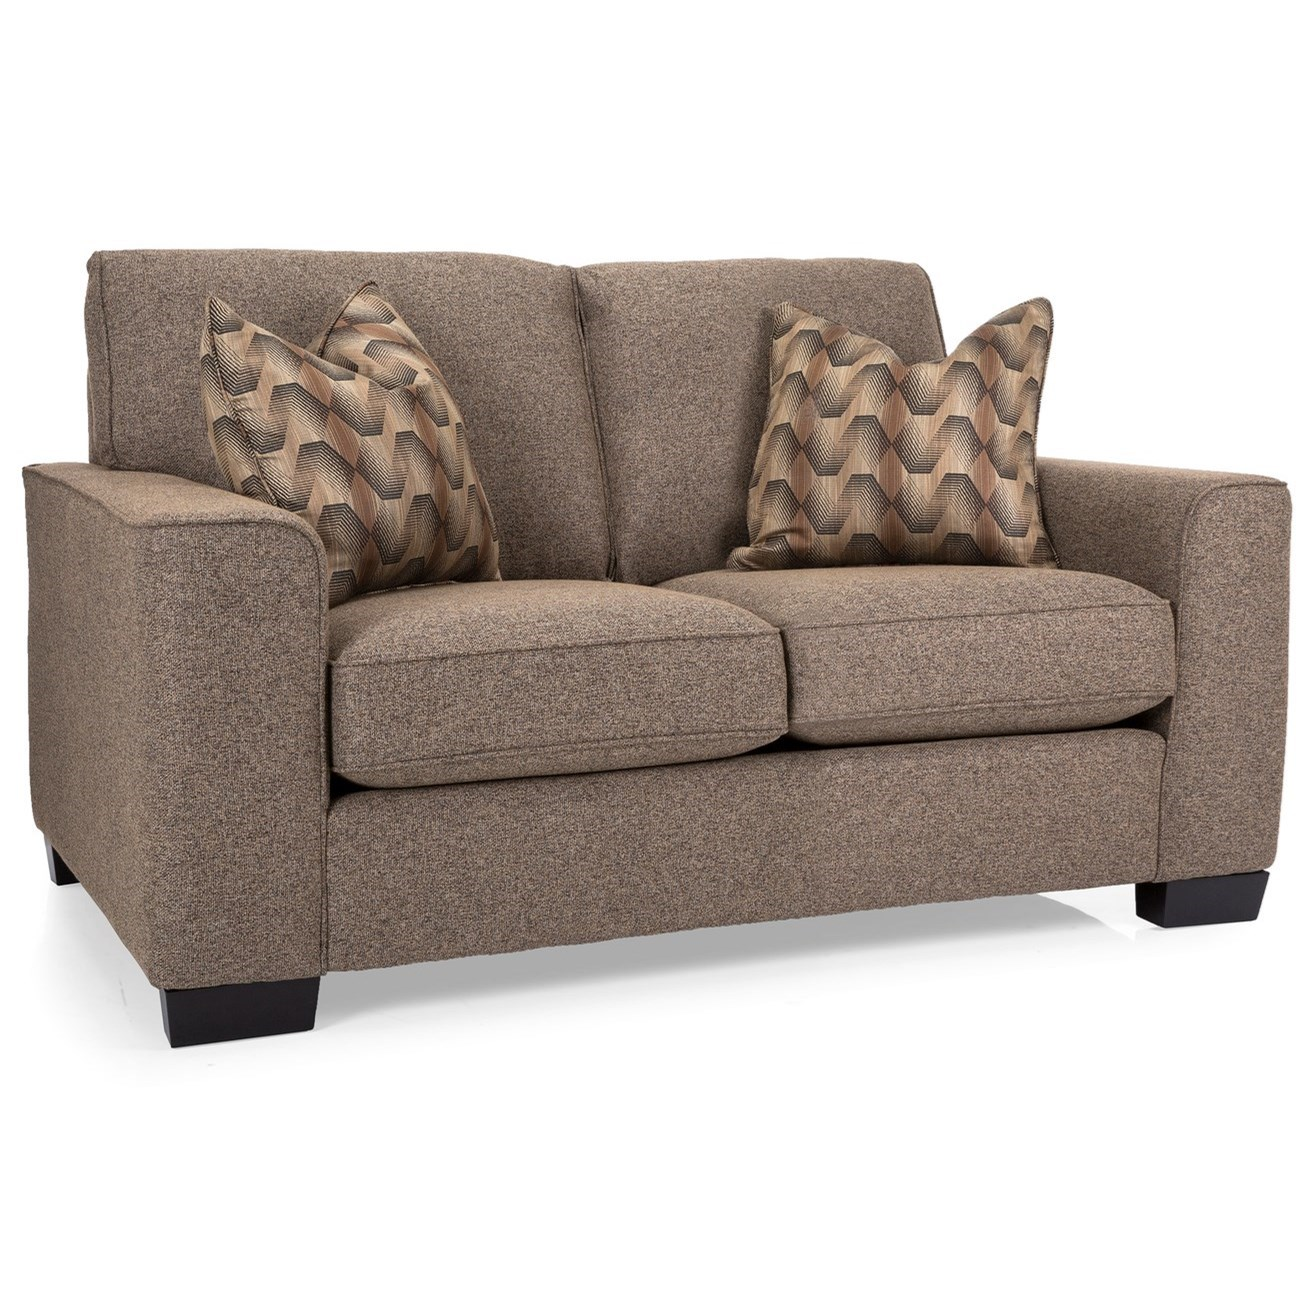 2483 Loveseat by Decor-Rest at Stoney Creek Furniture